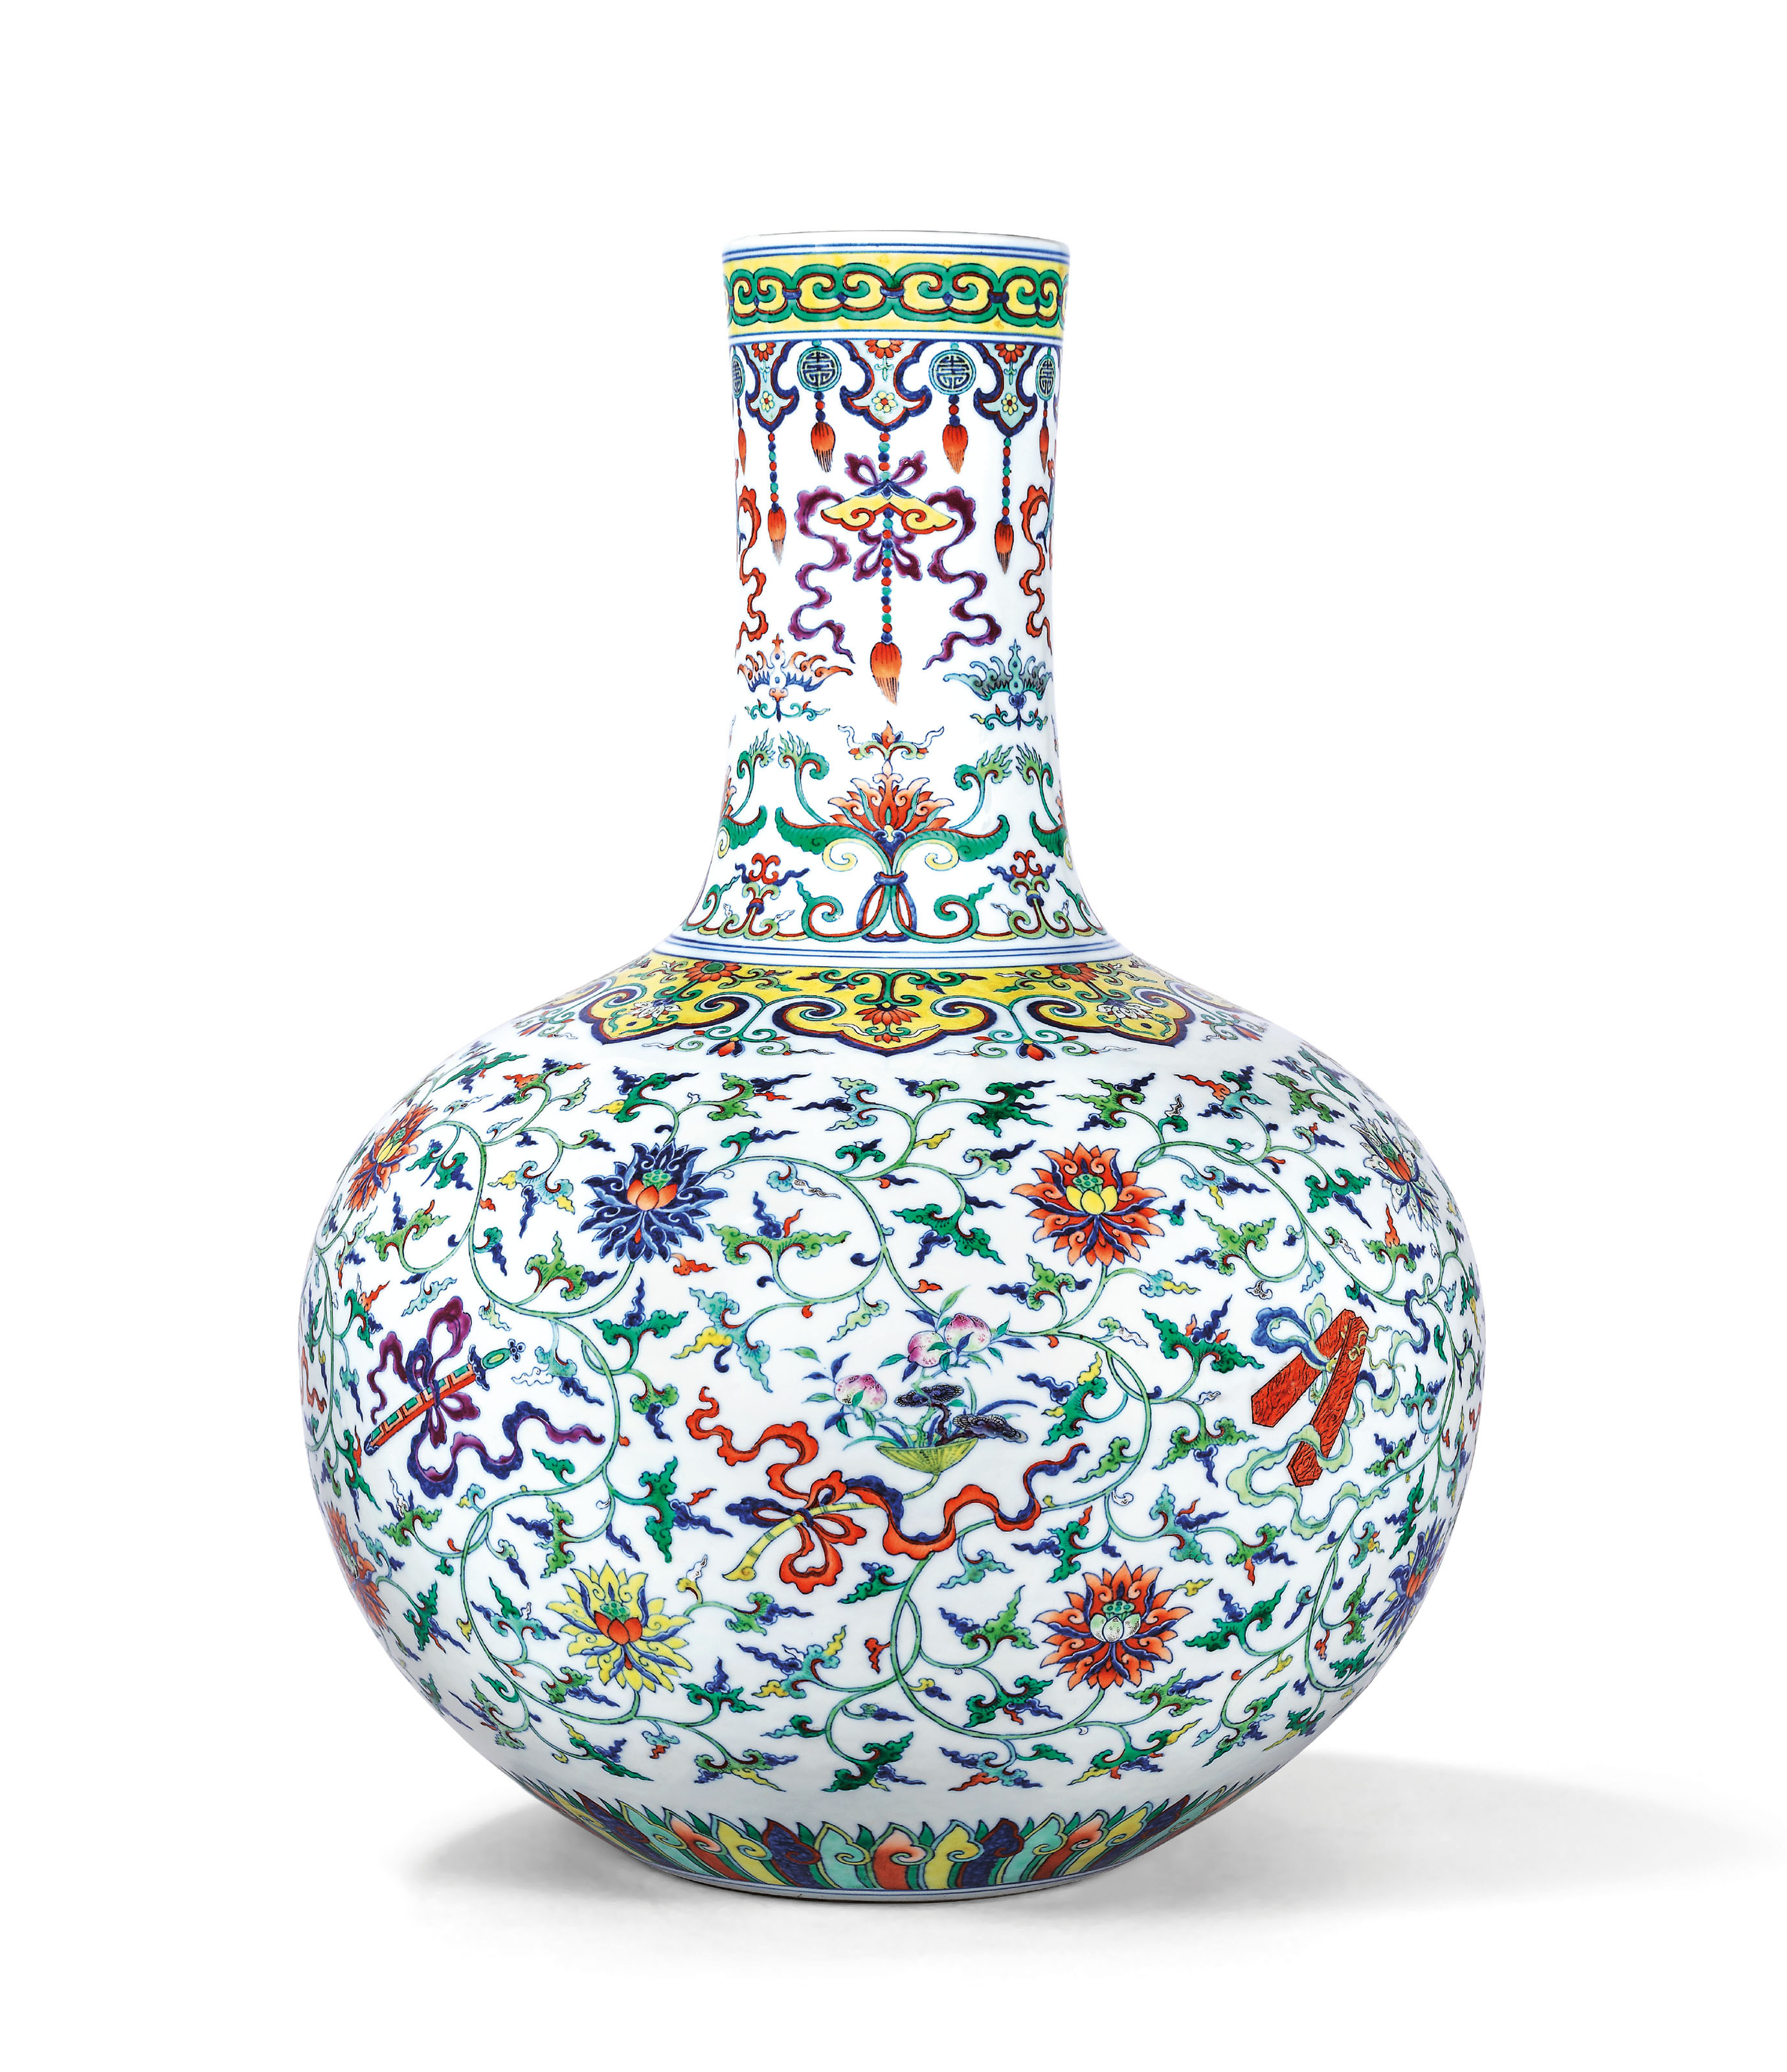 alvar aalto vase price of philbrook museum within this rare chinese vase languished in storage at an oklahoma museum for over a decade then it sold for 14 5 million